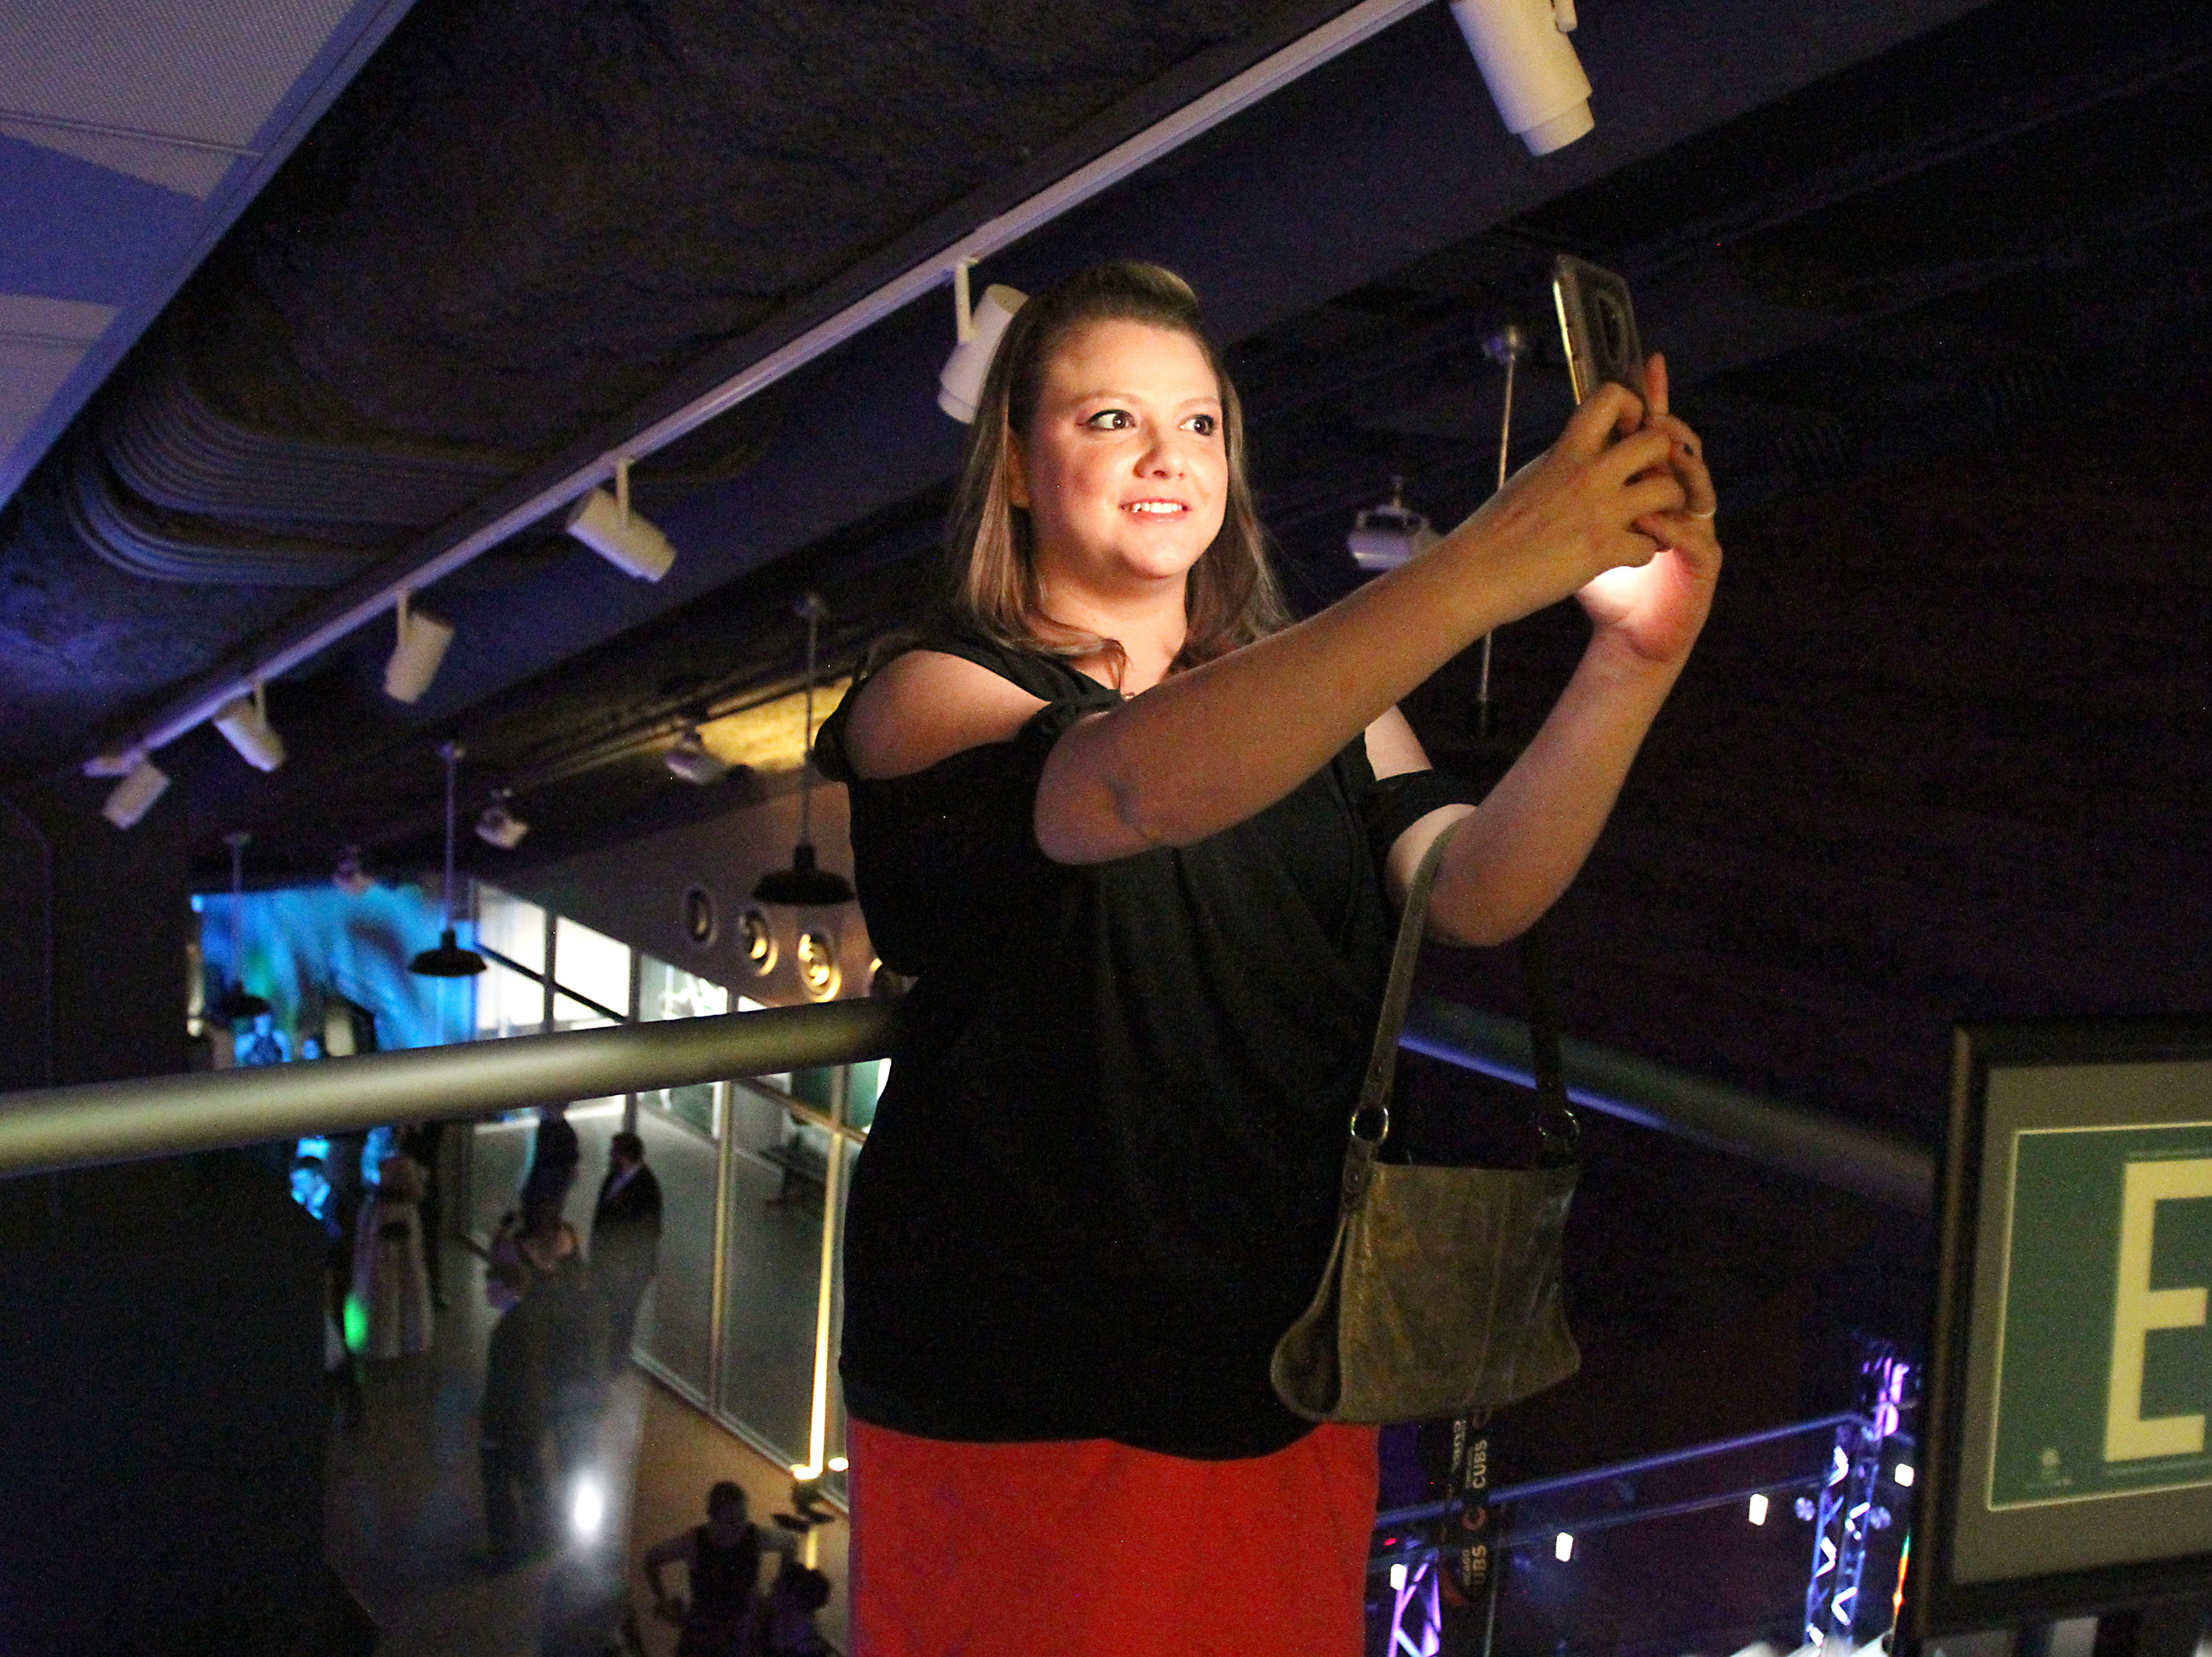 Joel Blocker / For the Coloradoan Liz Rodarte, who works in integrated services at Fort Collins, takes a moment to capture a selfie while chaperoning the LambkinsÕ prom held at Canvas stadium Saturday night.